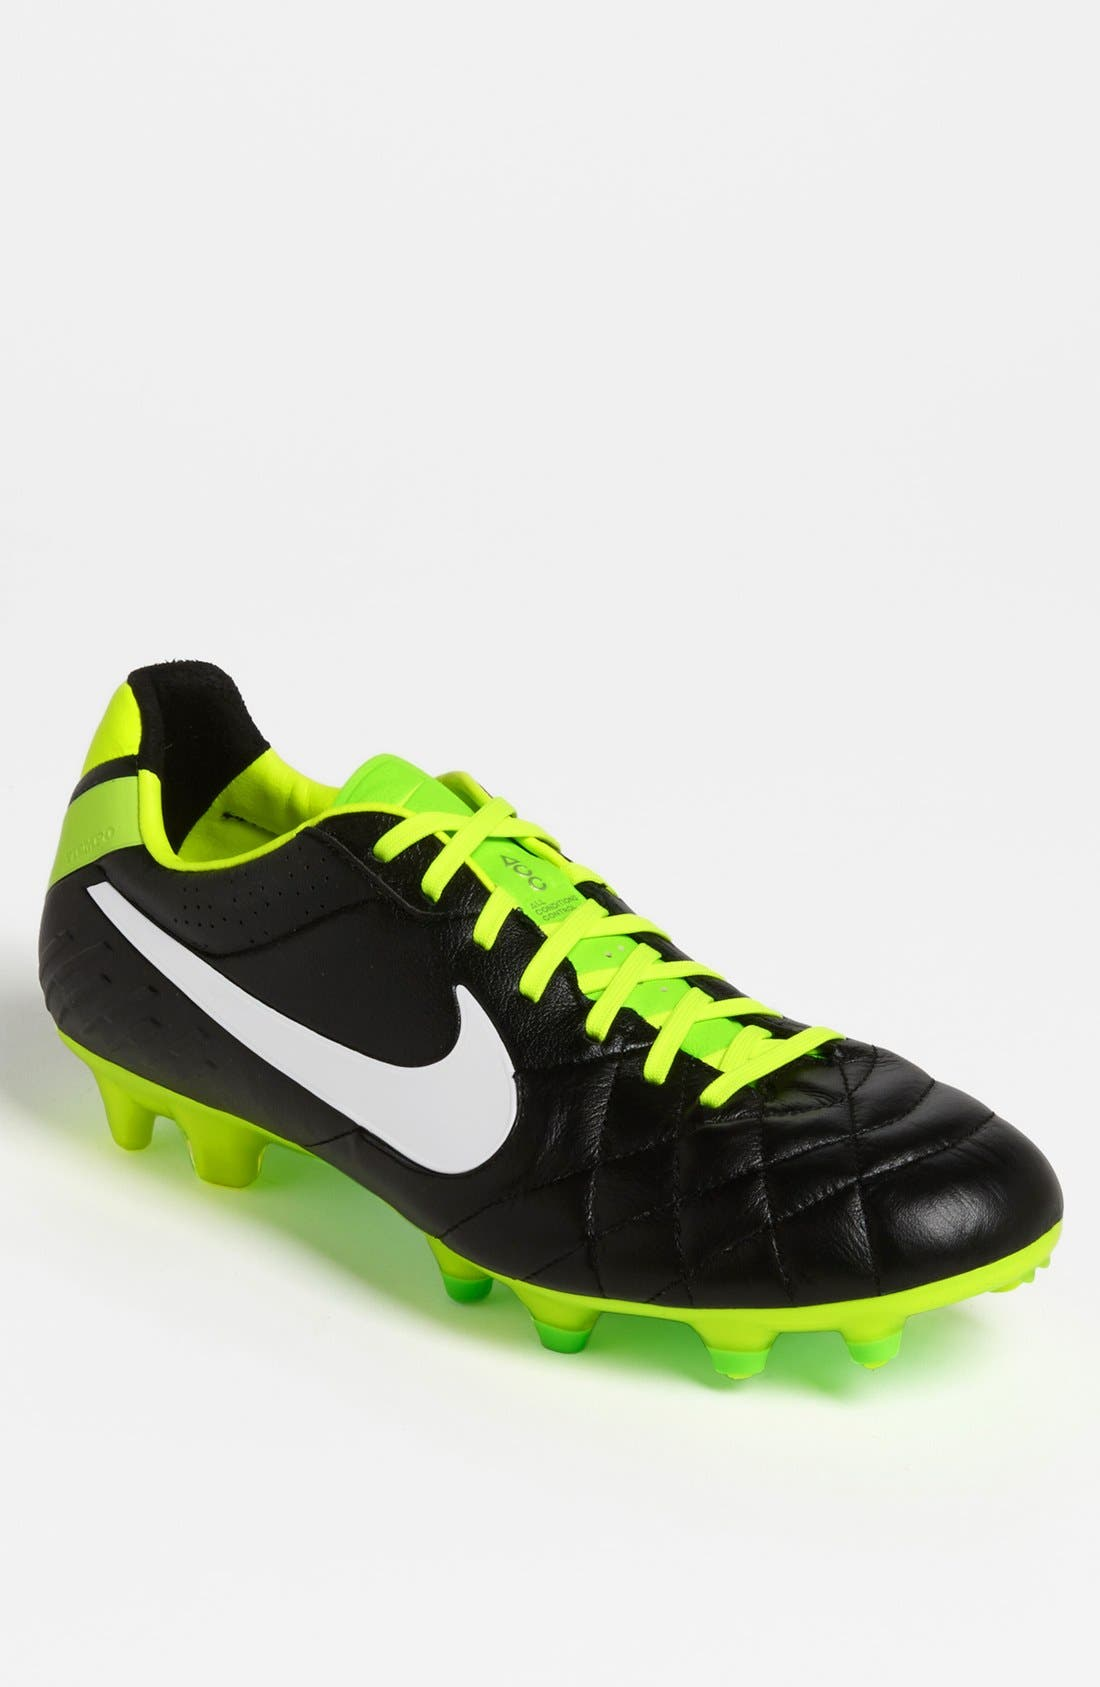 Alternate Image 1 Selected - Nike 'Tiempo Legend IV FG' Soccer Cleat (Men)